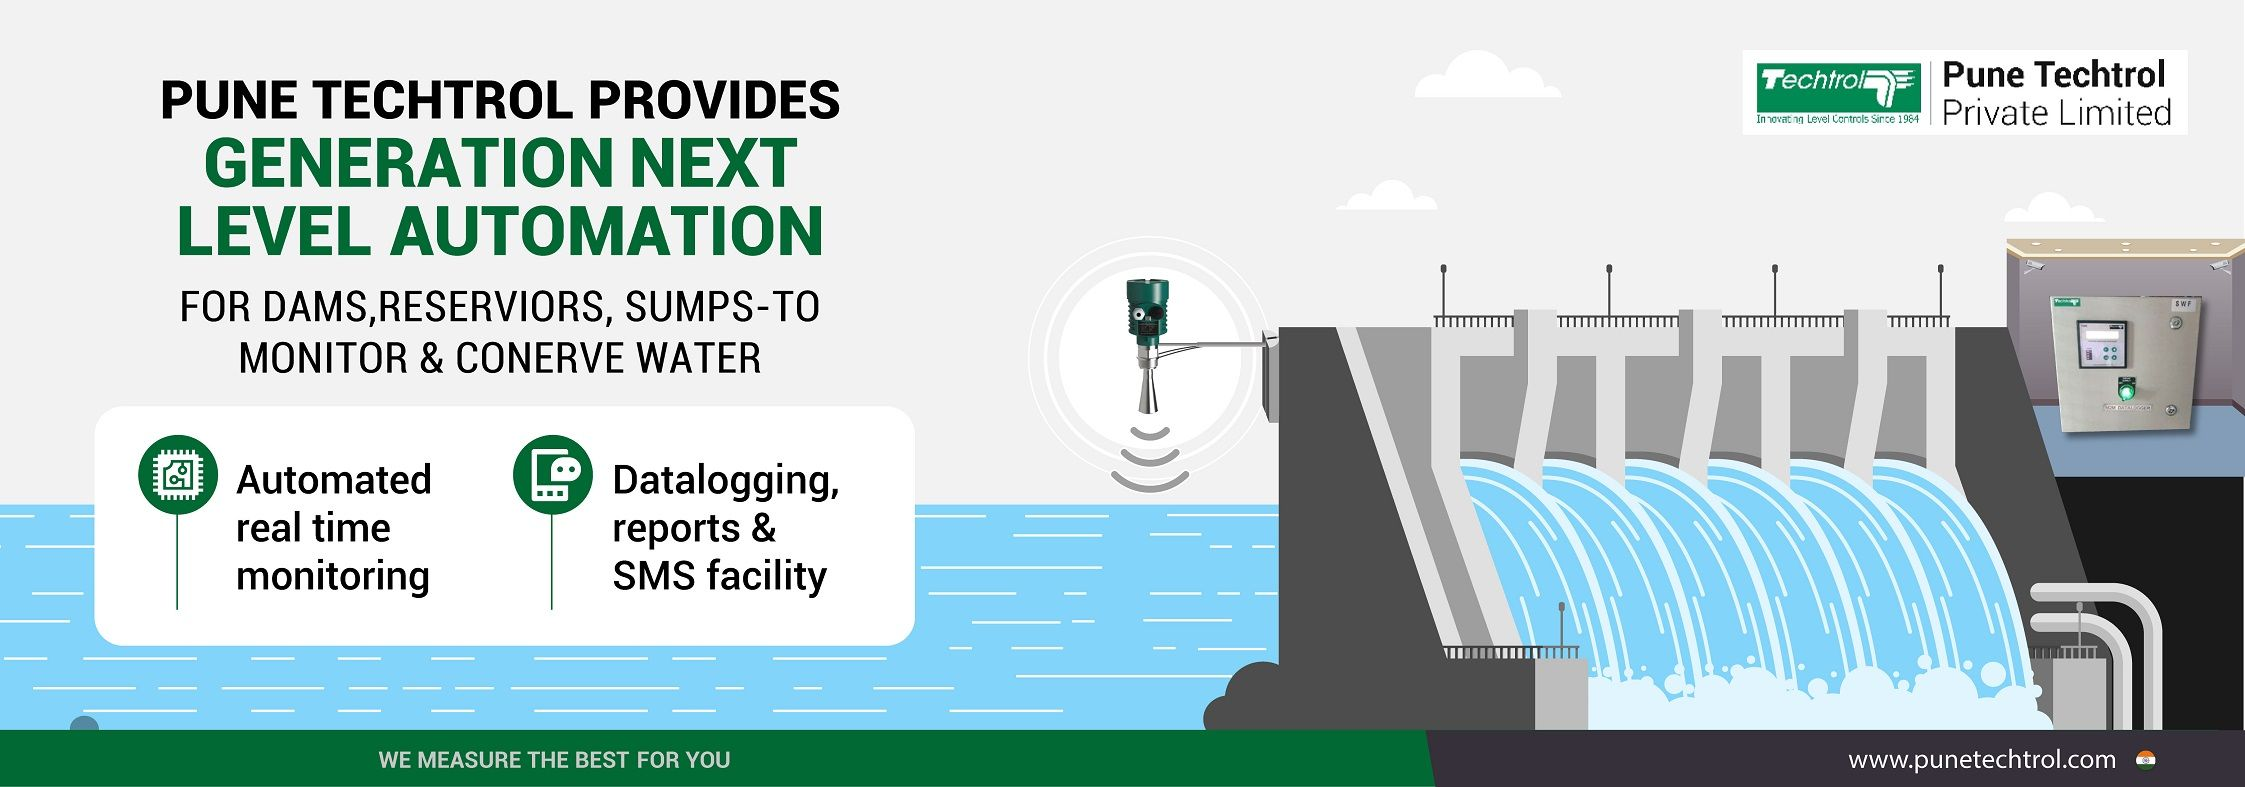 Pune Techtrol provides generation next level automation for dams to monitor and conserve water